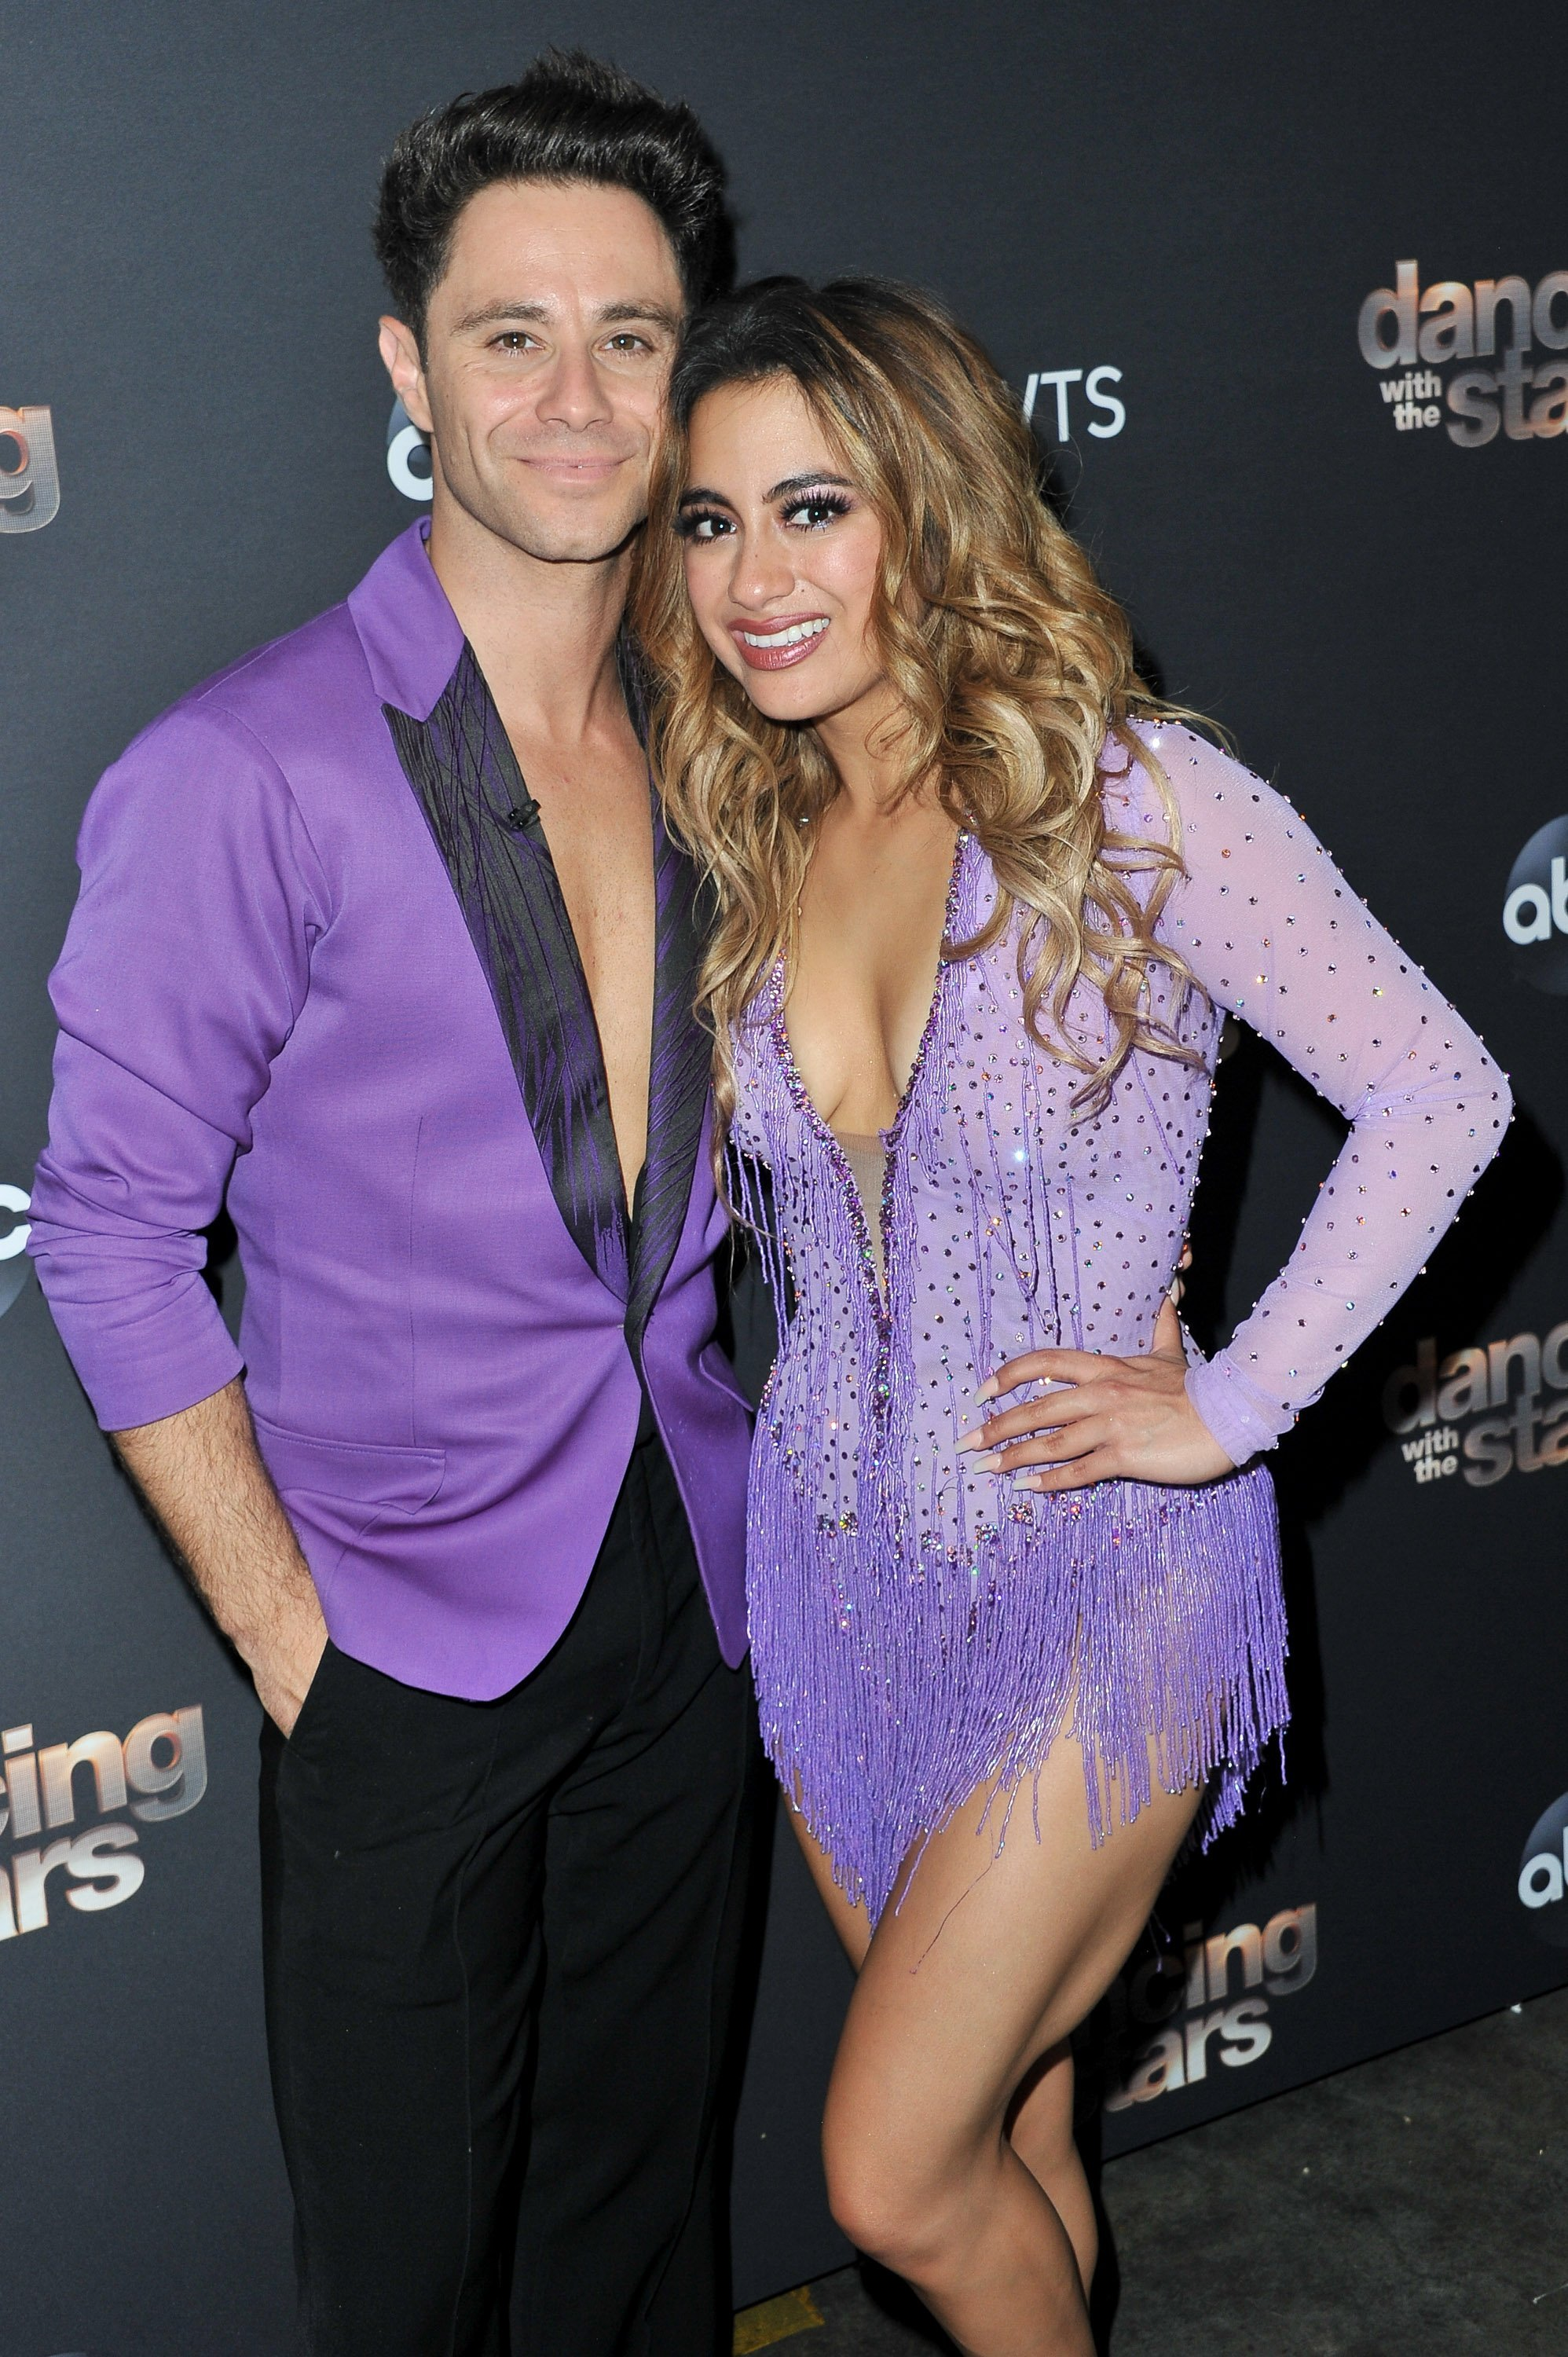 Sasha Farber and Ally Brooke on October 07, 2019 in Los Angeles, California | Source: Getty Images